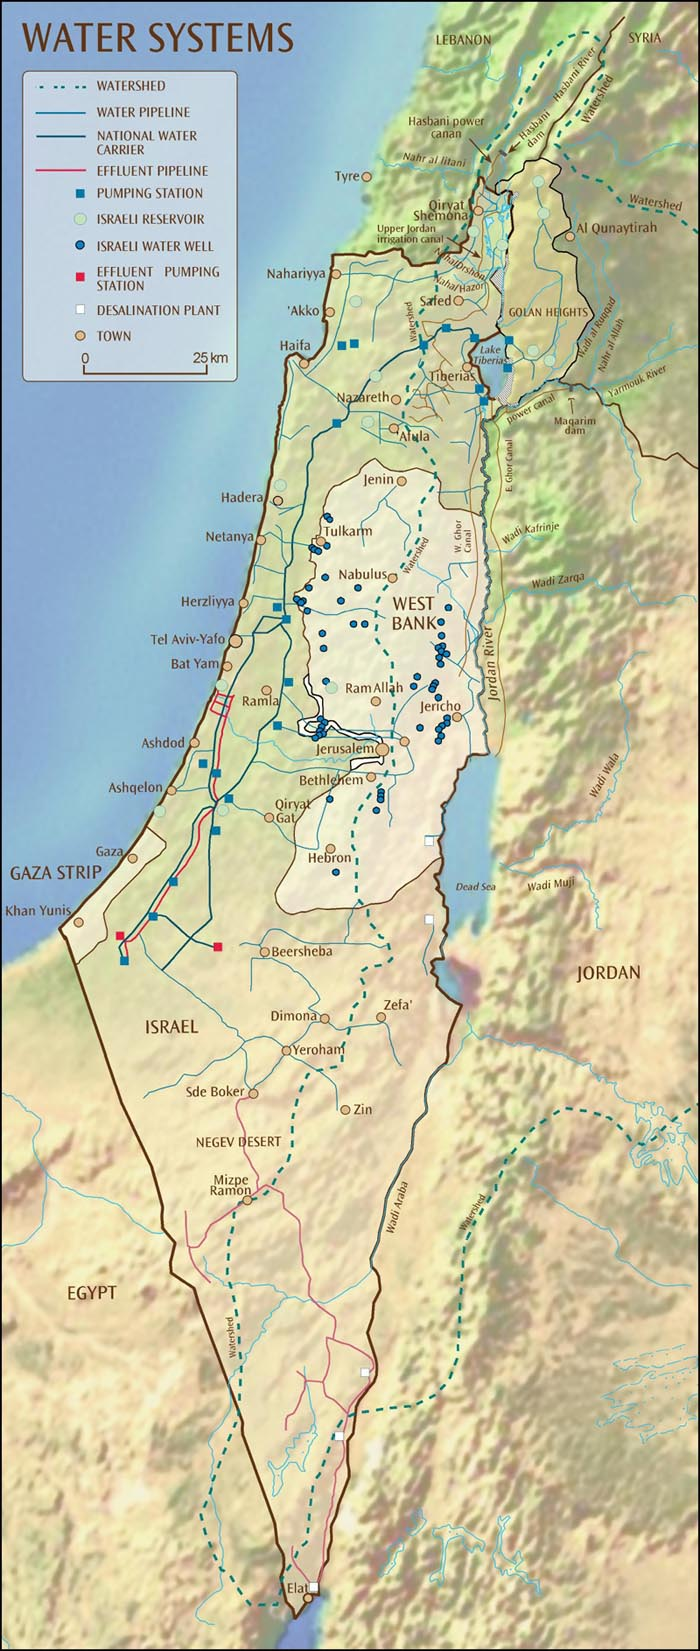 The Middle East Maps Israels Water Systems - Israel maps